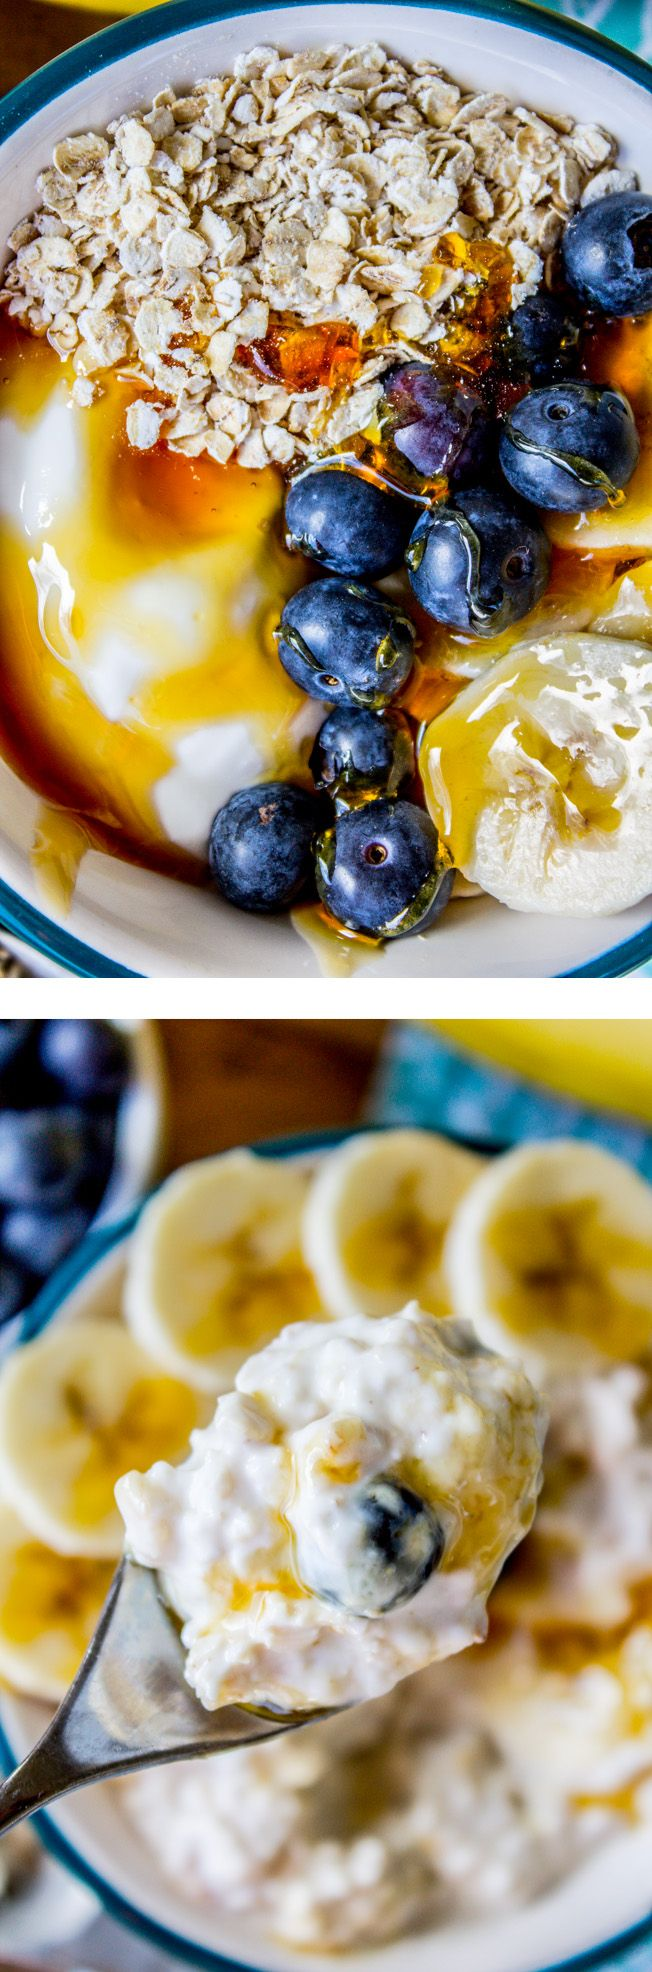 Combine quick oats with yogurt and let it sit overnight and you get a delicious and healthy treat for breakfast! I added banana, blueberries, and honey.